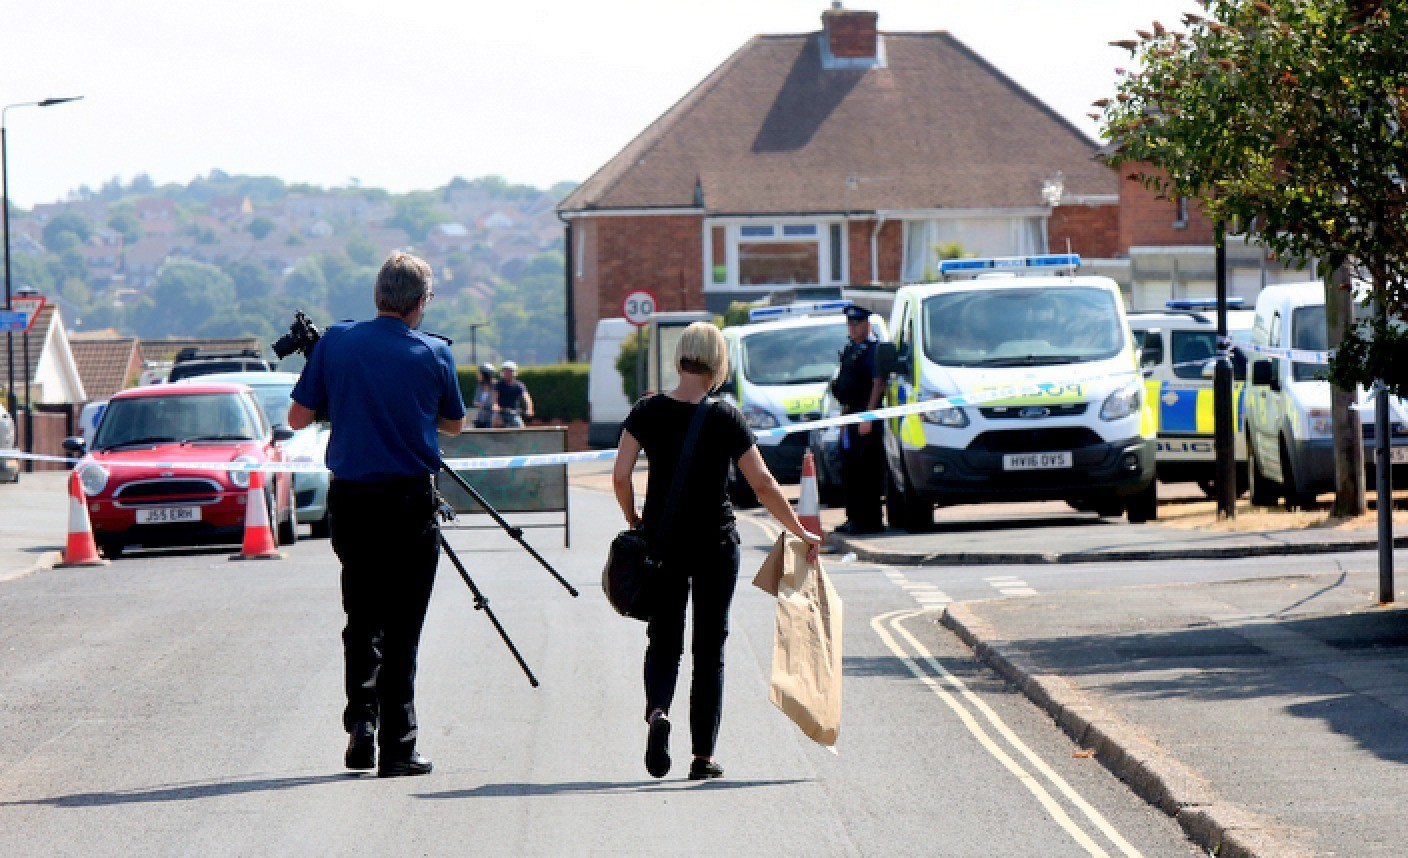 cowardly-cowes-knife-attack-caught-on-cctv-as-the-search-for-stab-weapon-continues